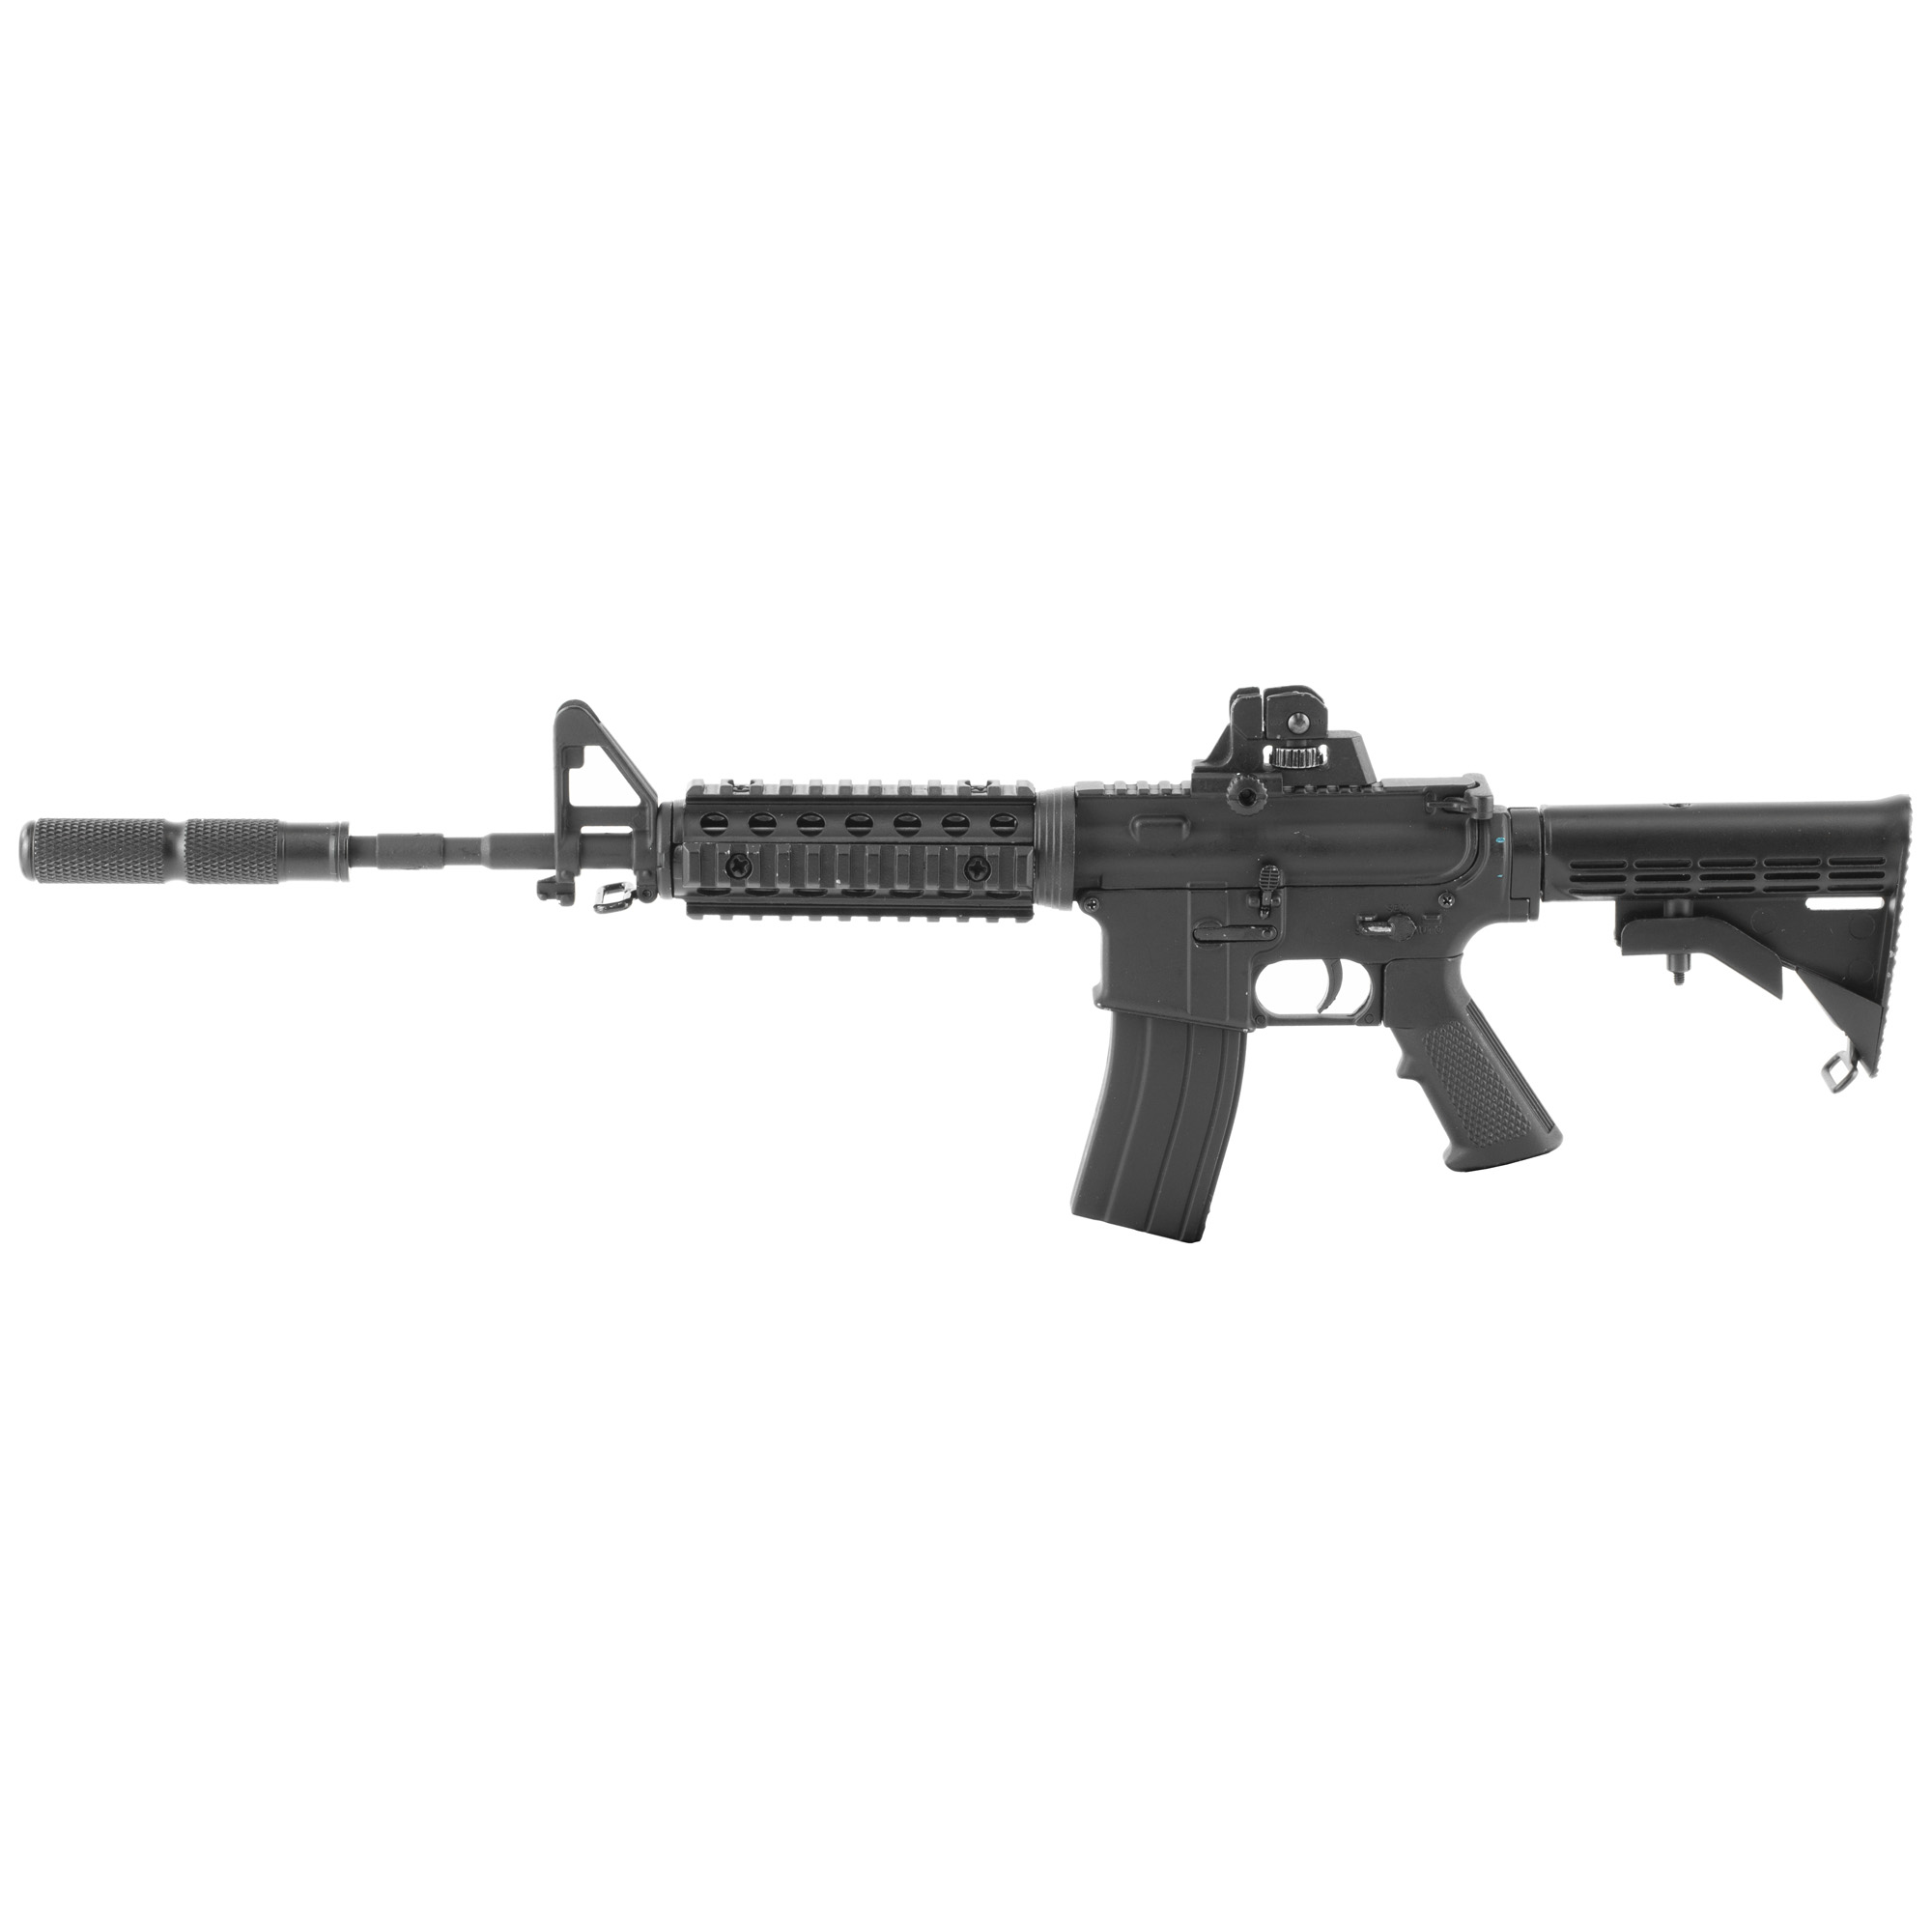 Adv Tech Ar15 Cast 1/3 Scl Non-fire